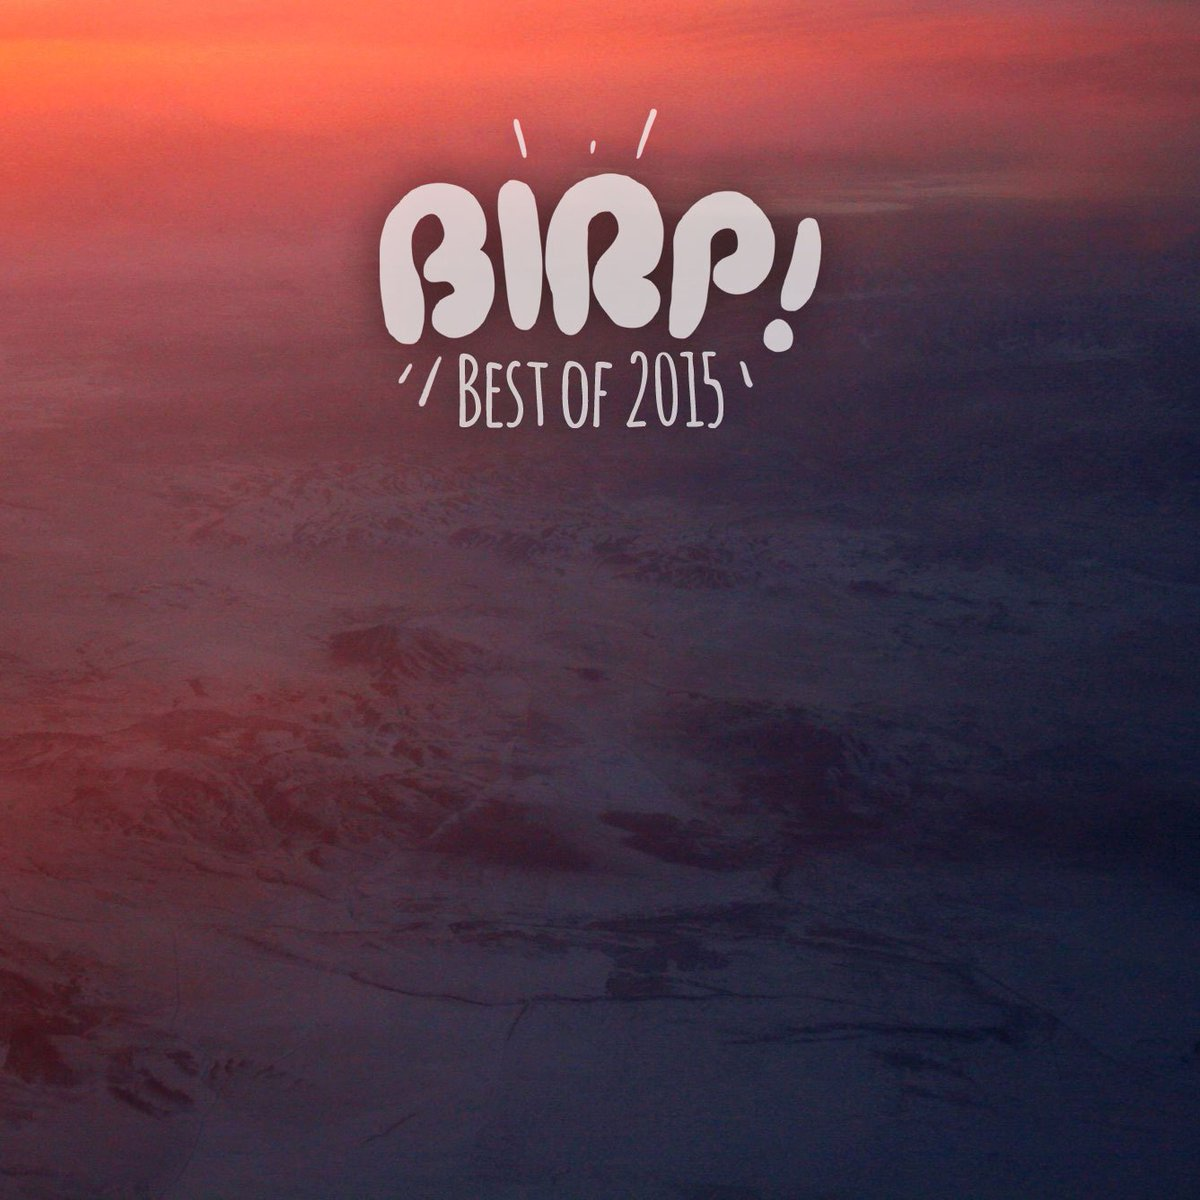 FINALLY. BIRP! Best of 2015 is now available for download/stream! 130 Tracks... Go listen! https://t.co/qQpeR2tDkj https://t.co/wTFlIywLof